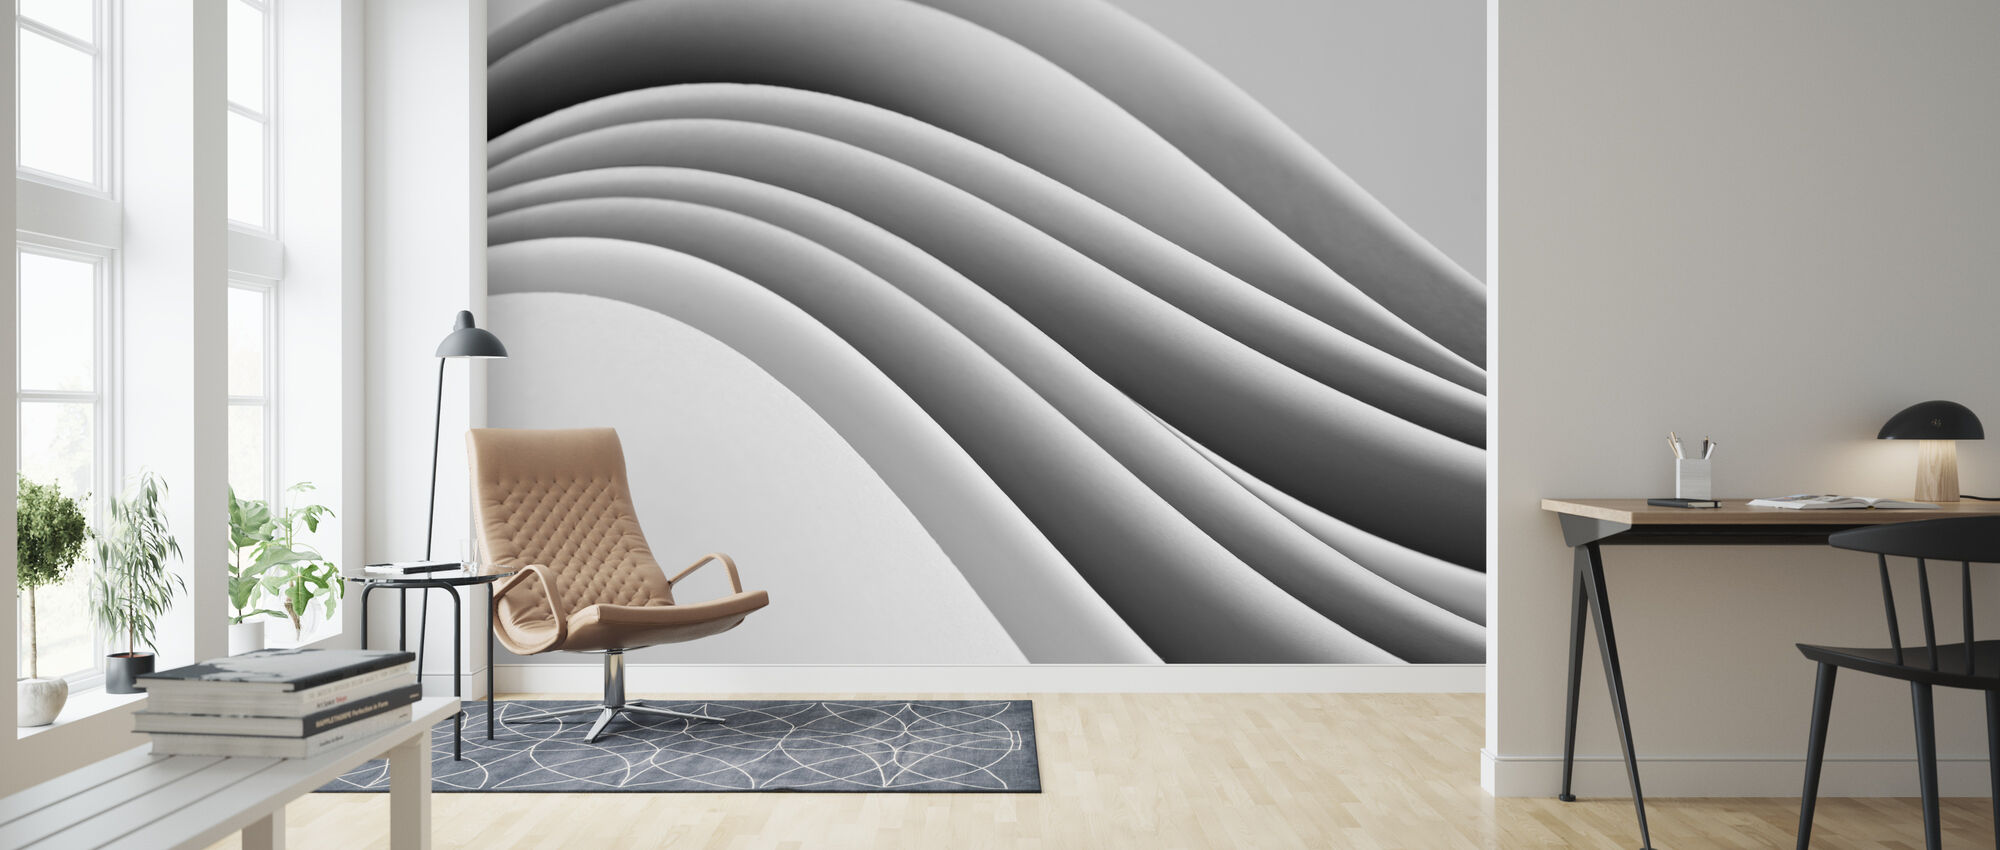 Flowing Paper - Wallpaper - Living Room